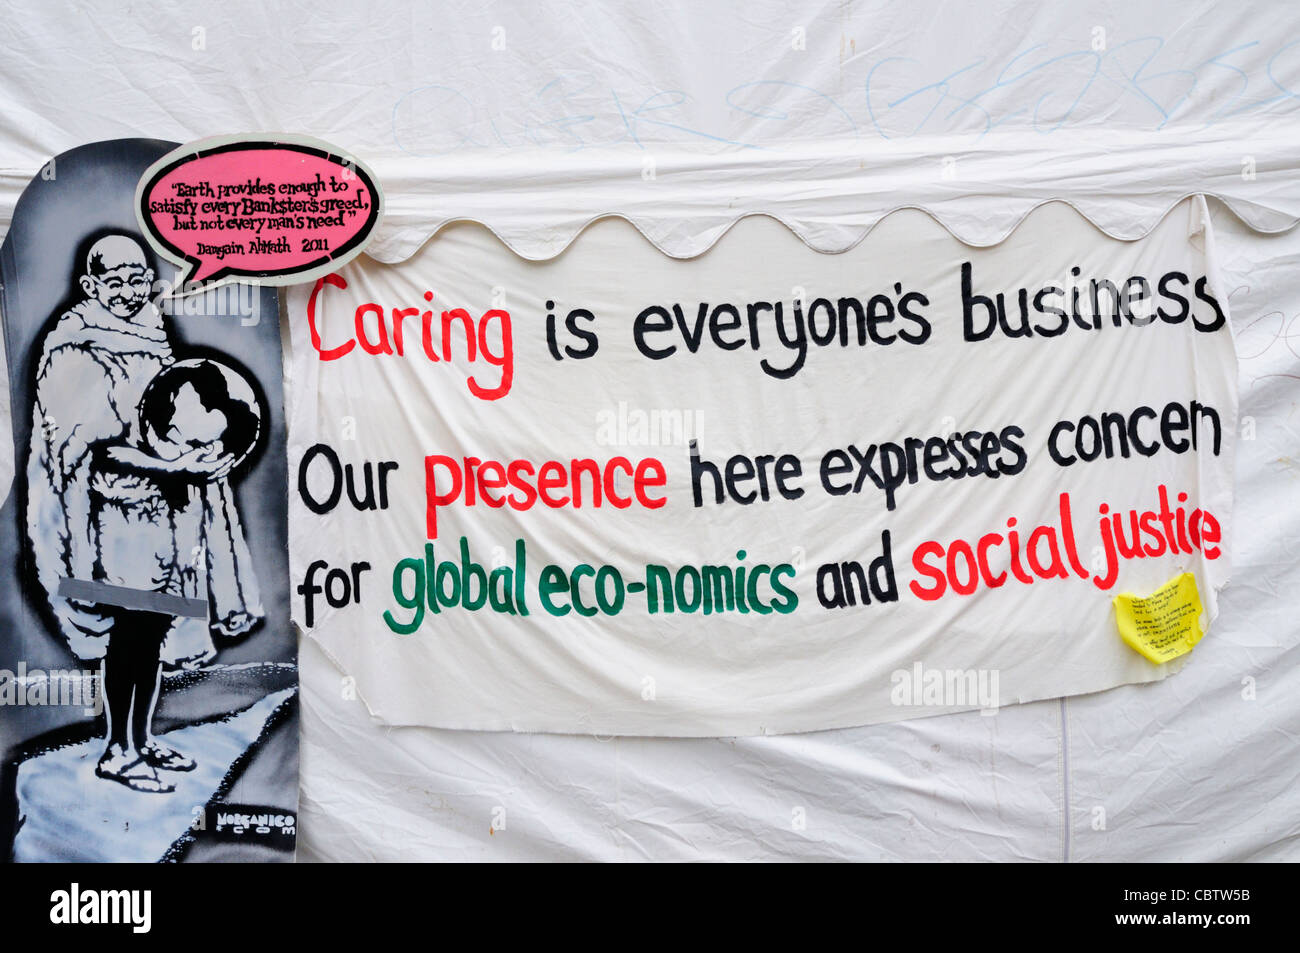 Banner on The Information Tent at The Anti Capitalism demo protest outside St Paul's Cathedral, London, England. - Stock Image